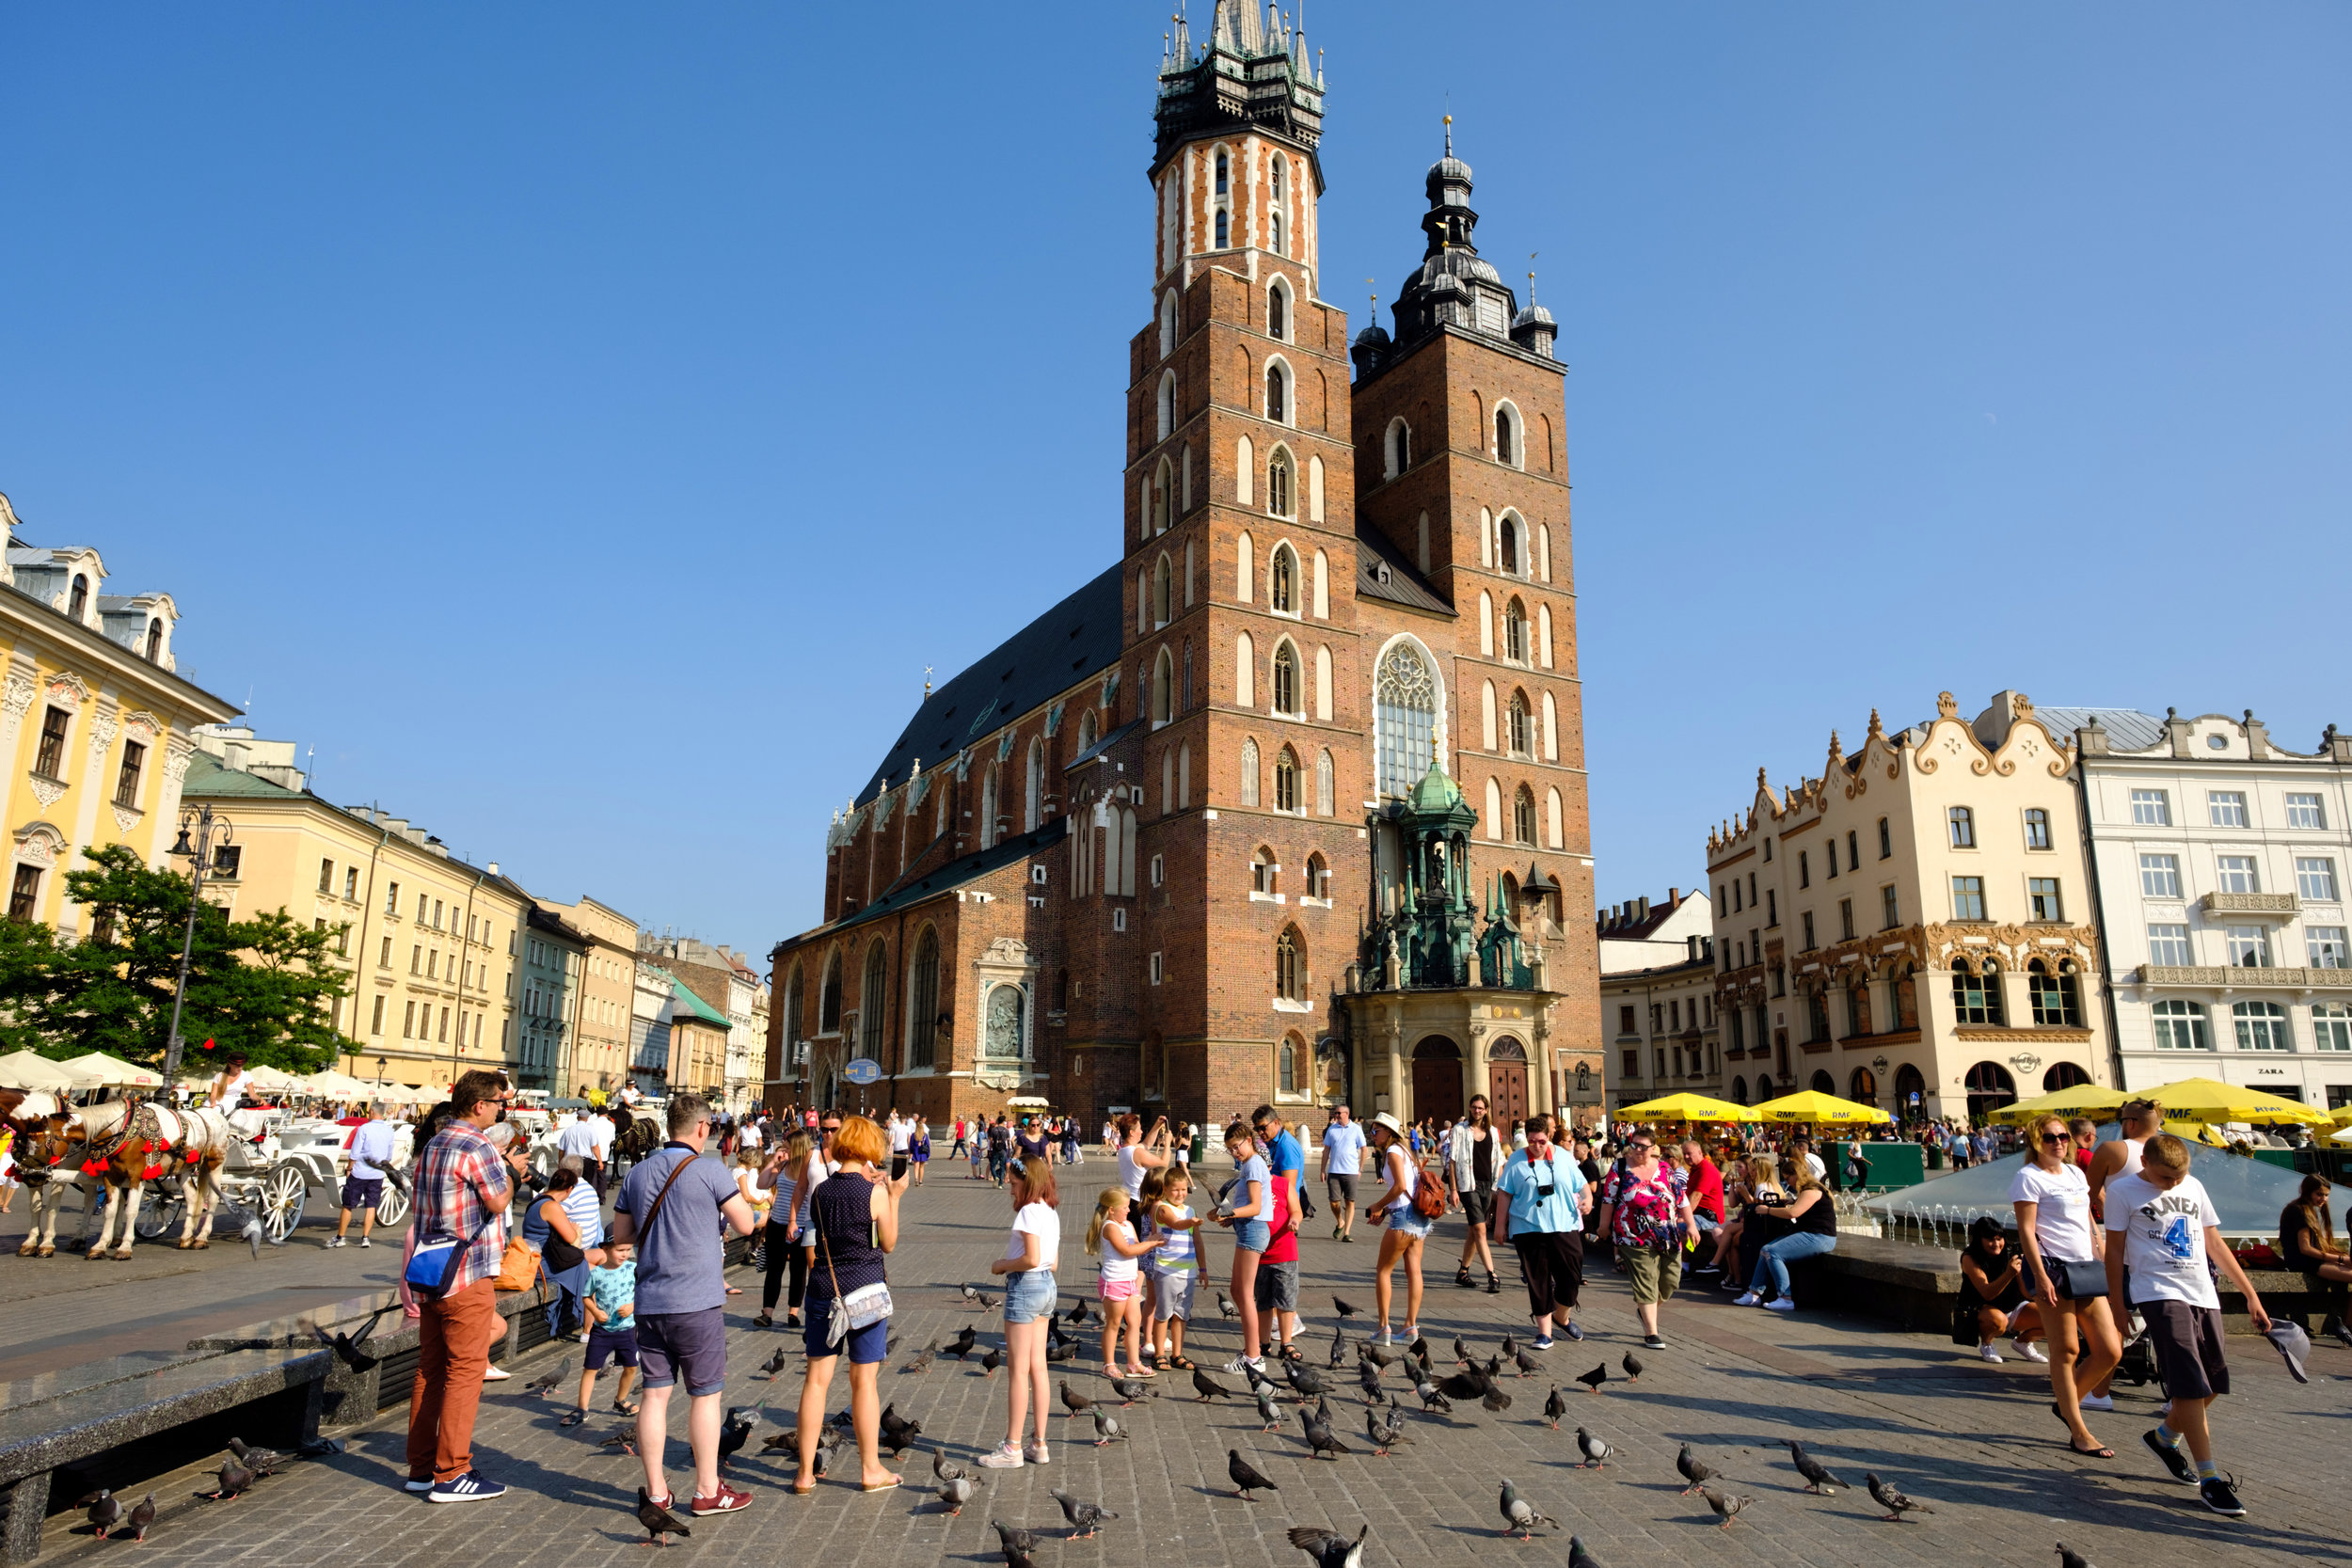 The Main Square and St. Mary's Basilica in Krakow